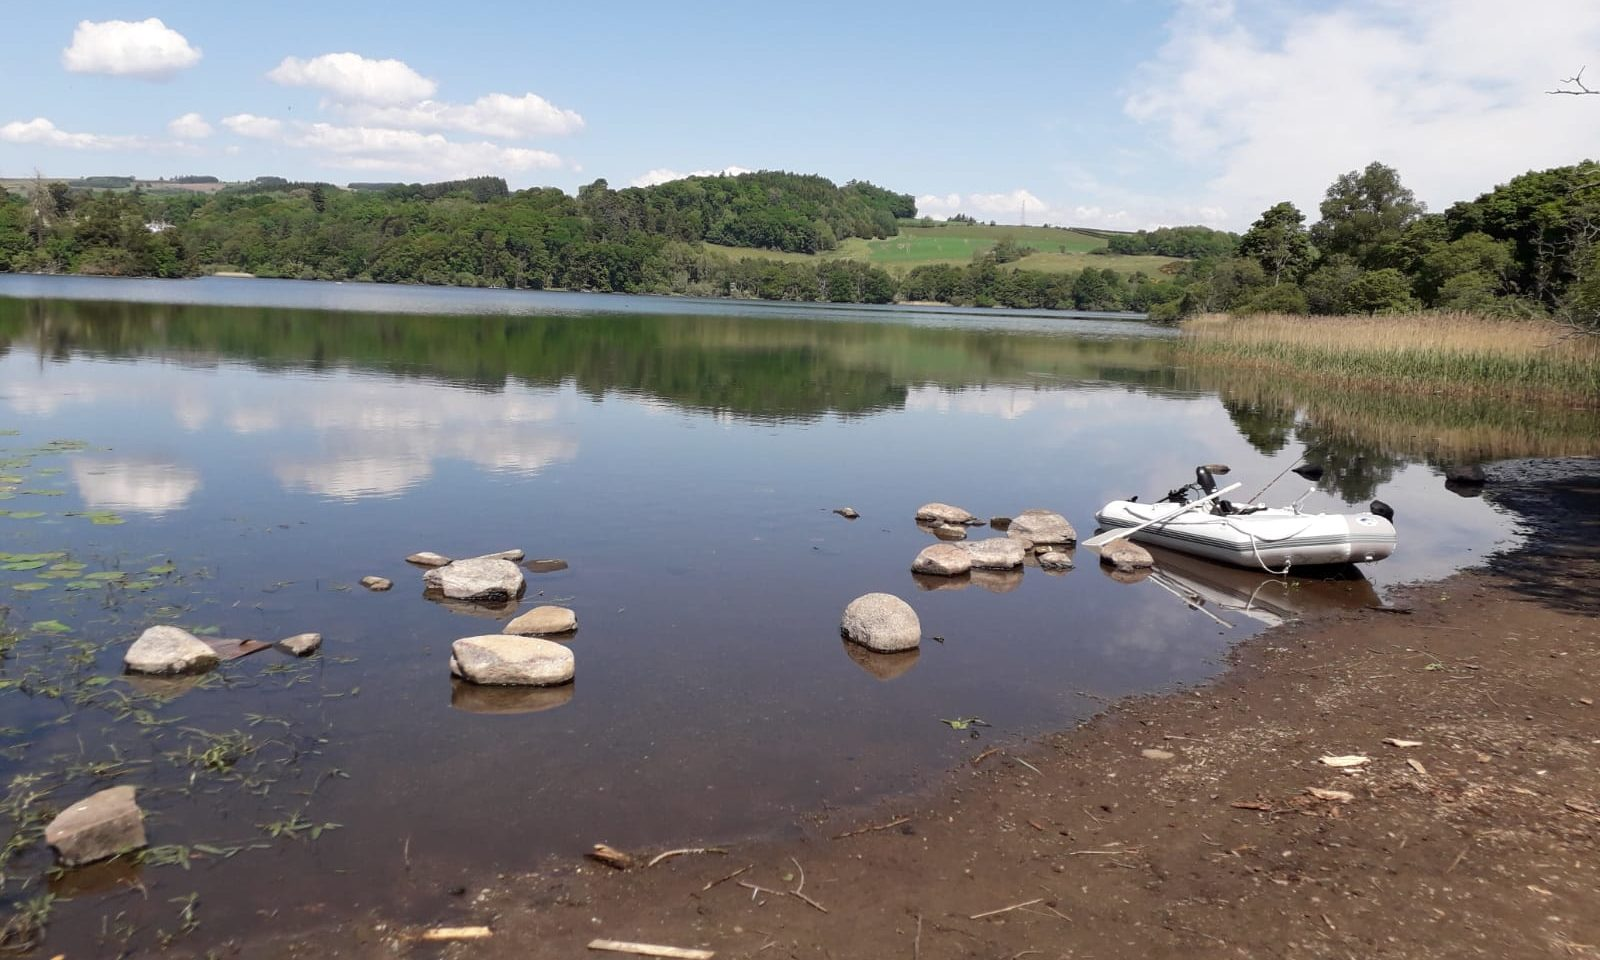 Loch Clunie has hosted unwelcome campers and litterbugs since lockdown restrictions were lifted.